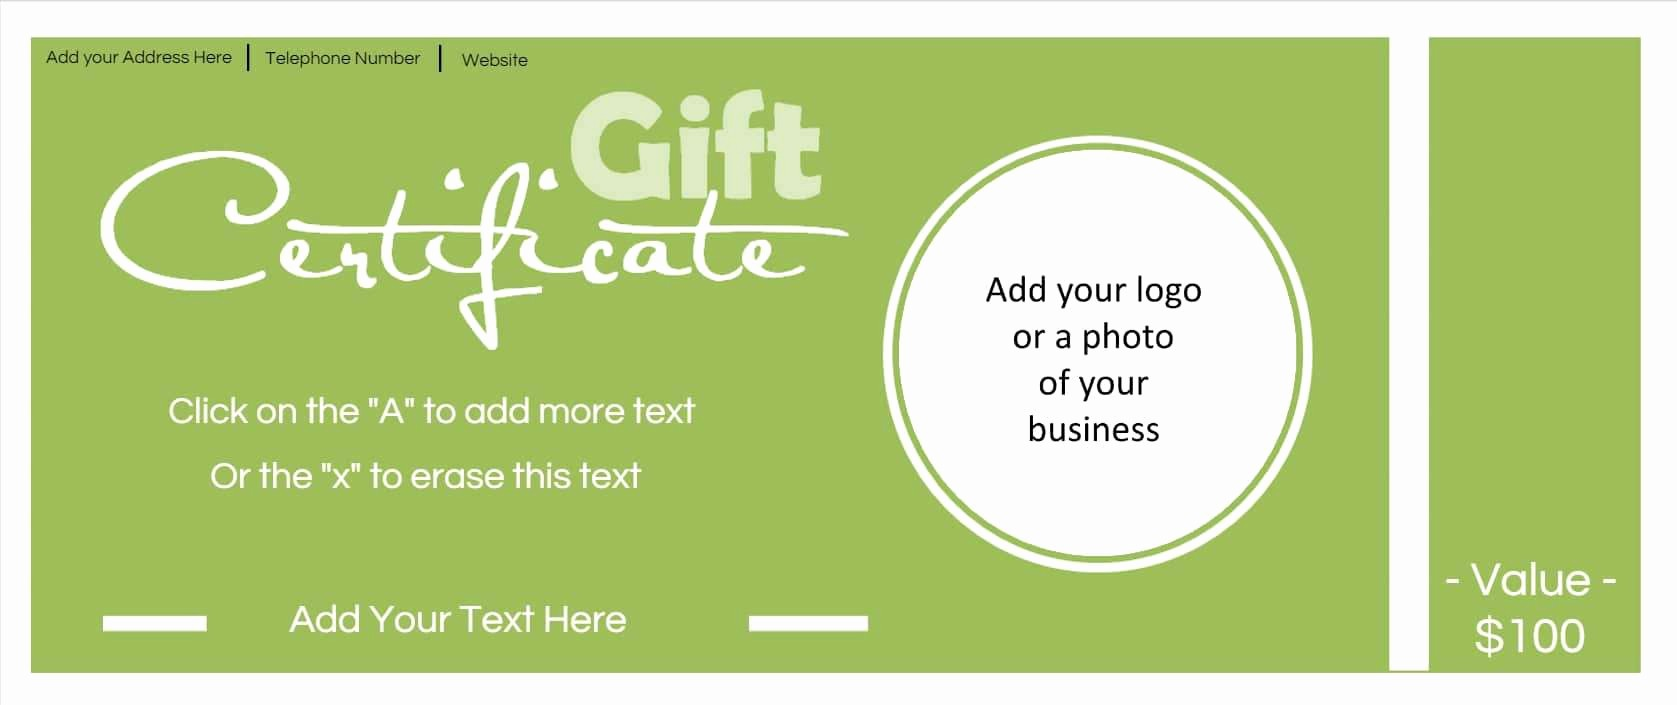 Gift Certificates for Small Business Inspirational Gift Certificate Template with Logo